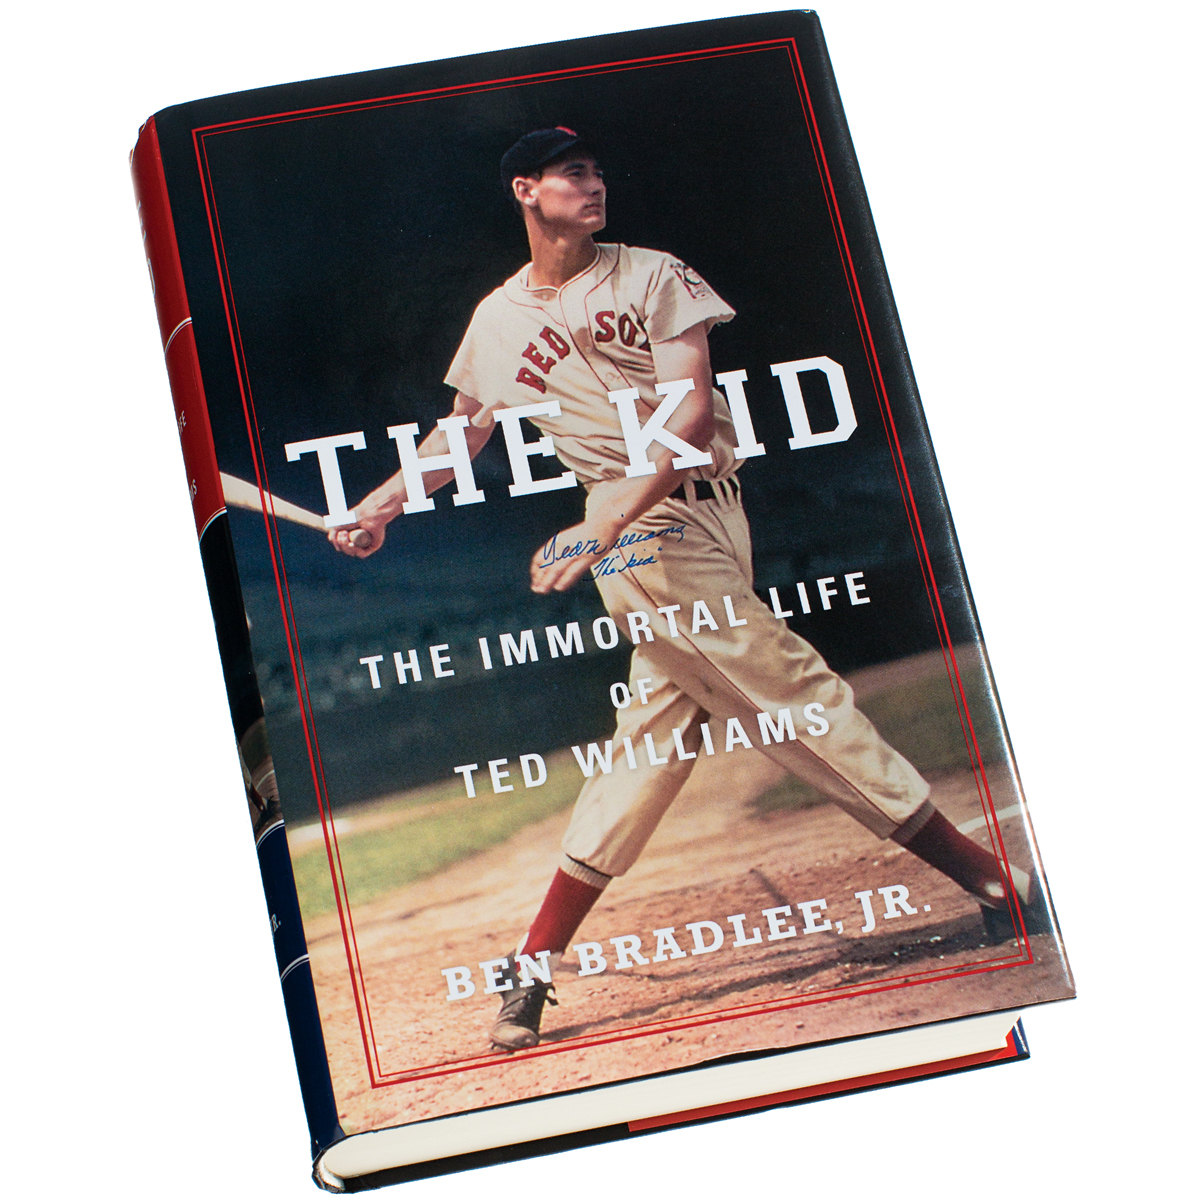 http://cdn1.bostonmagazine.com/wp-content/uploads/2013/11/ted-williams-book-the-kid.jpg